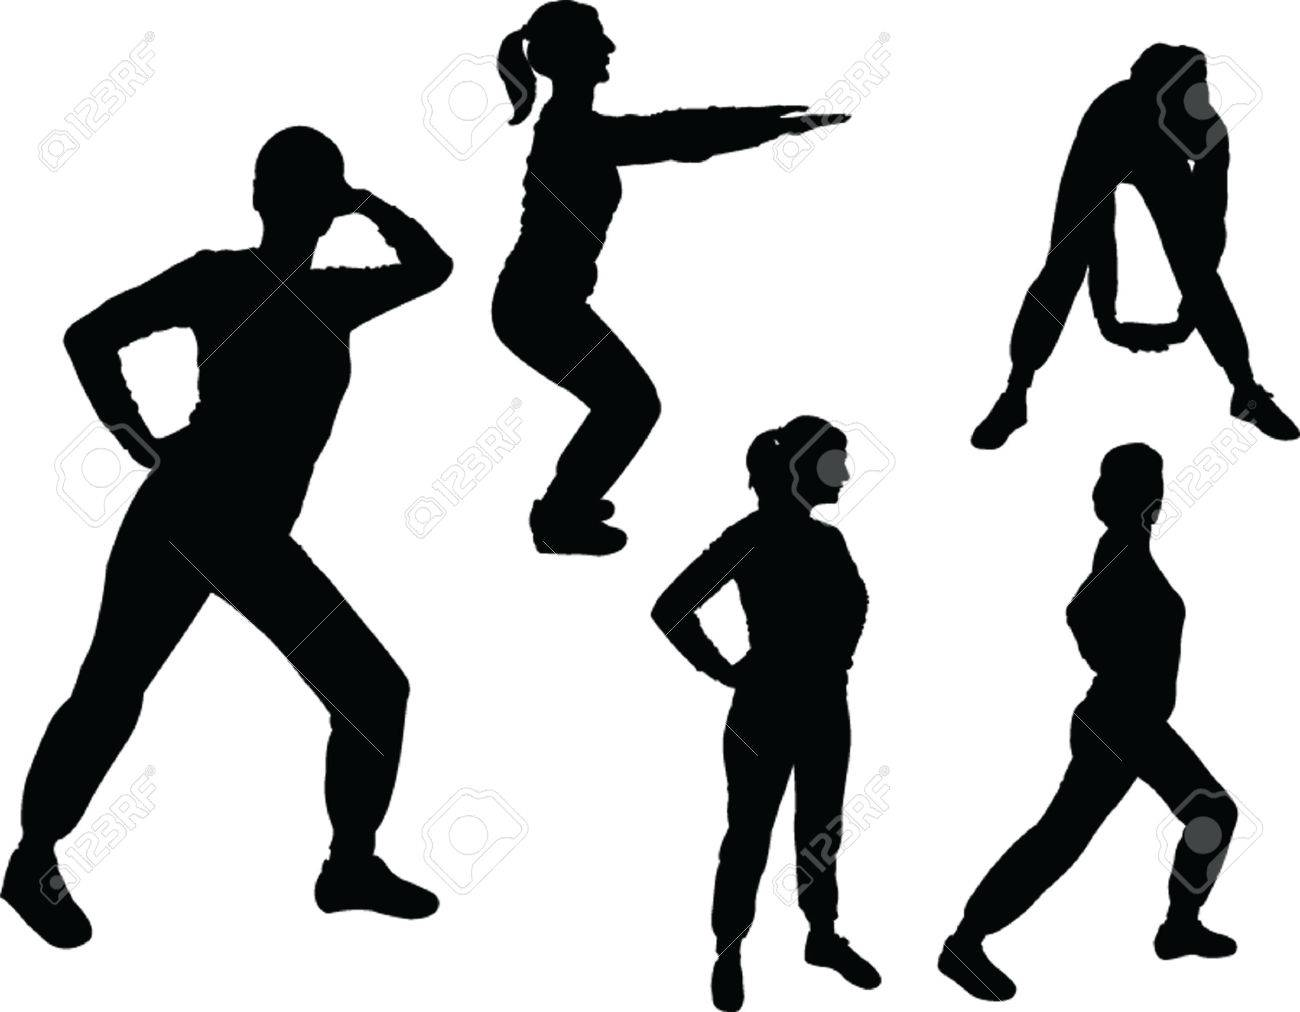 girls exercising silhouettes Stock Vector - 8009426